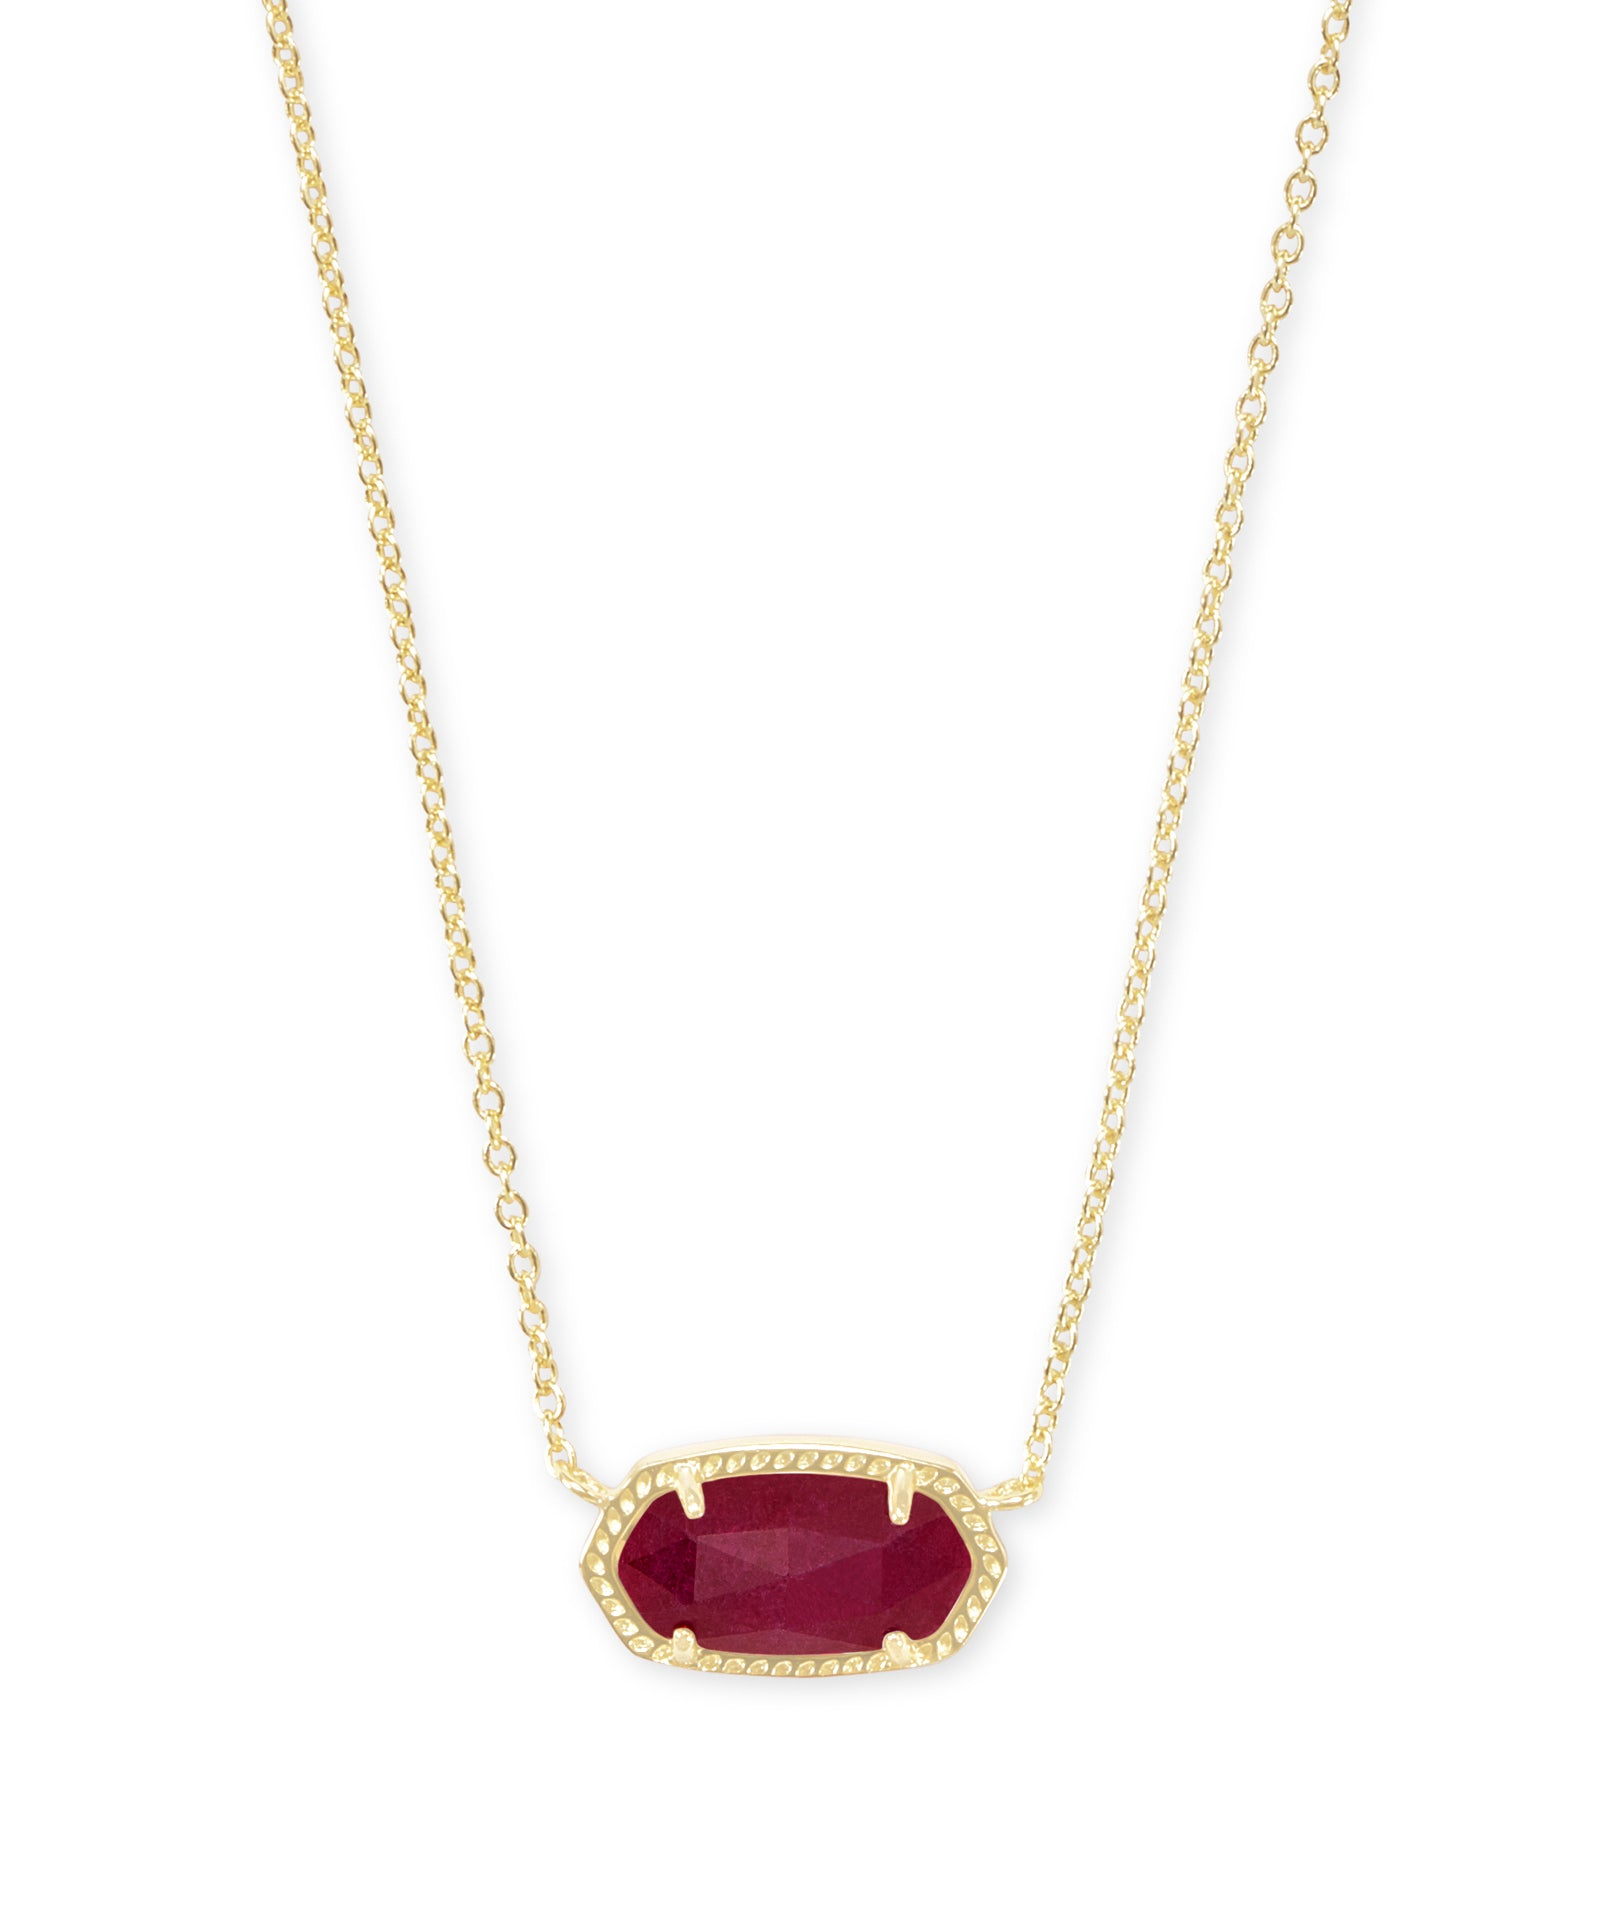 ELISA NECKLACE GOLD MAROON JADE